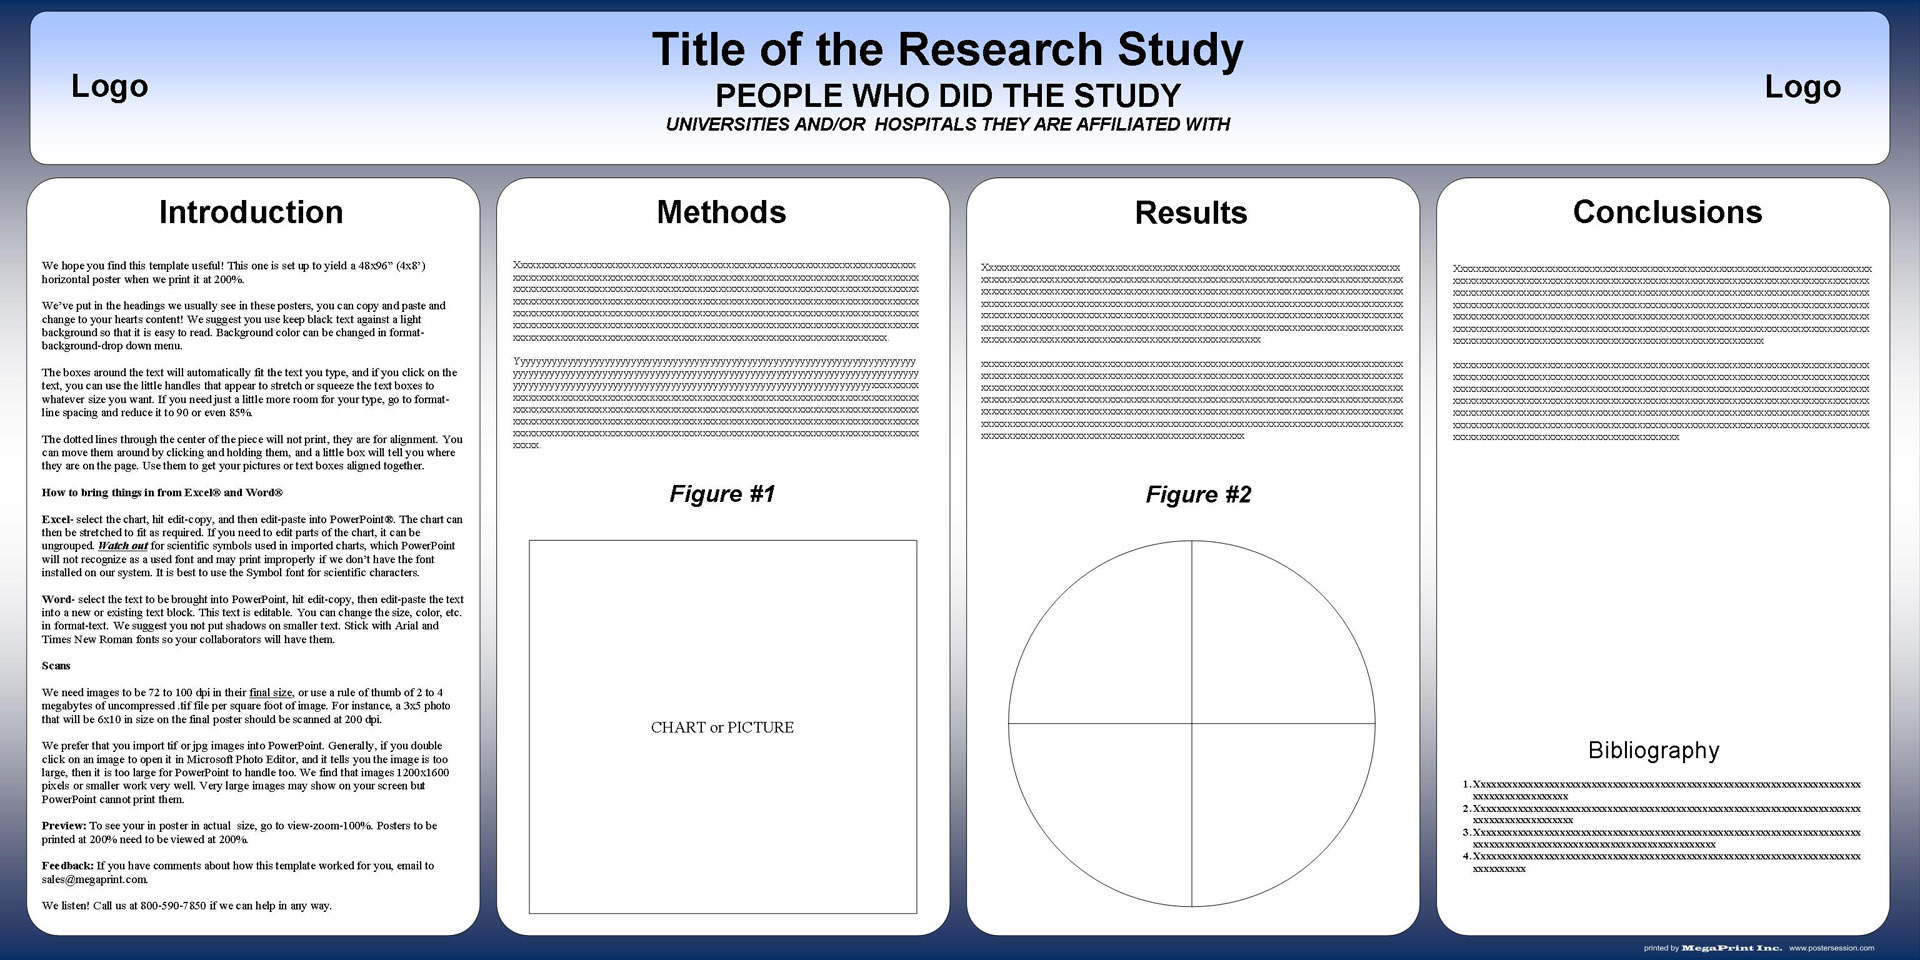 Free powerpoint scientific research poster templates for printing 48x96 academic poster template download toneelgroepblik Images